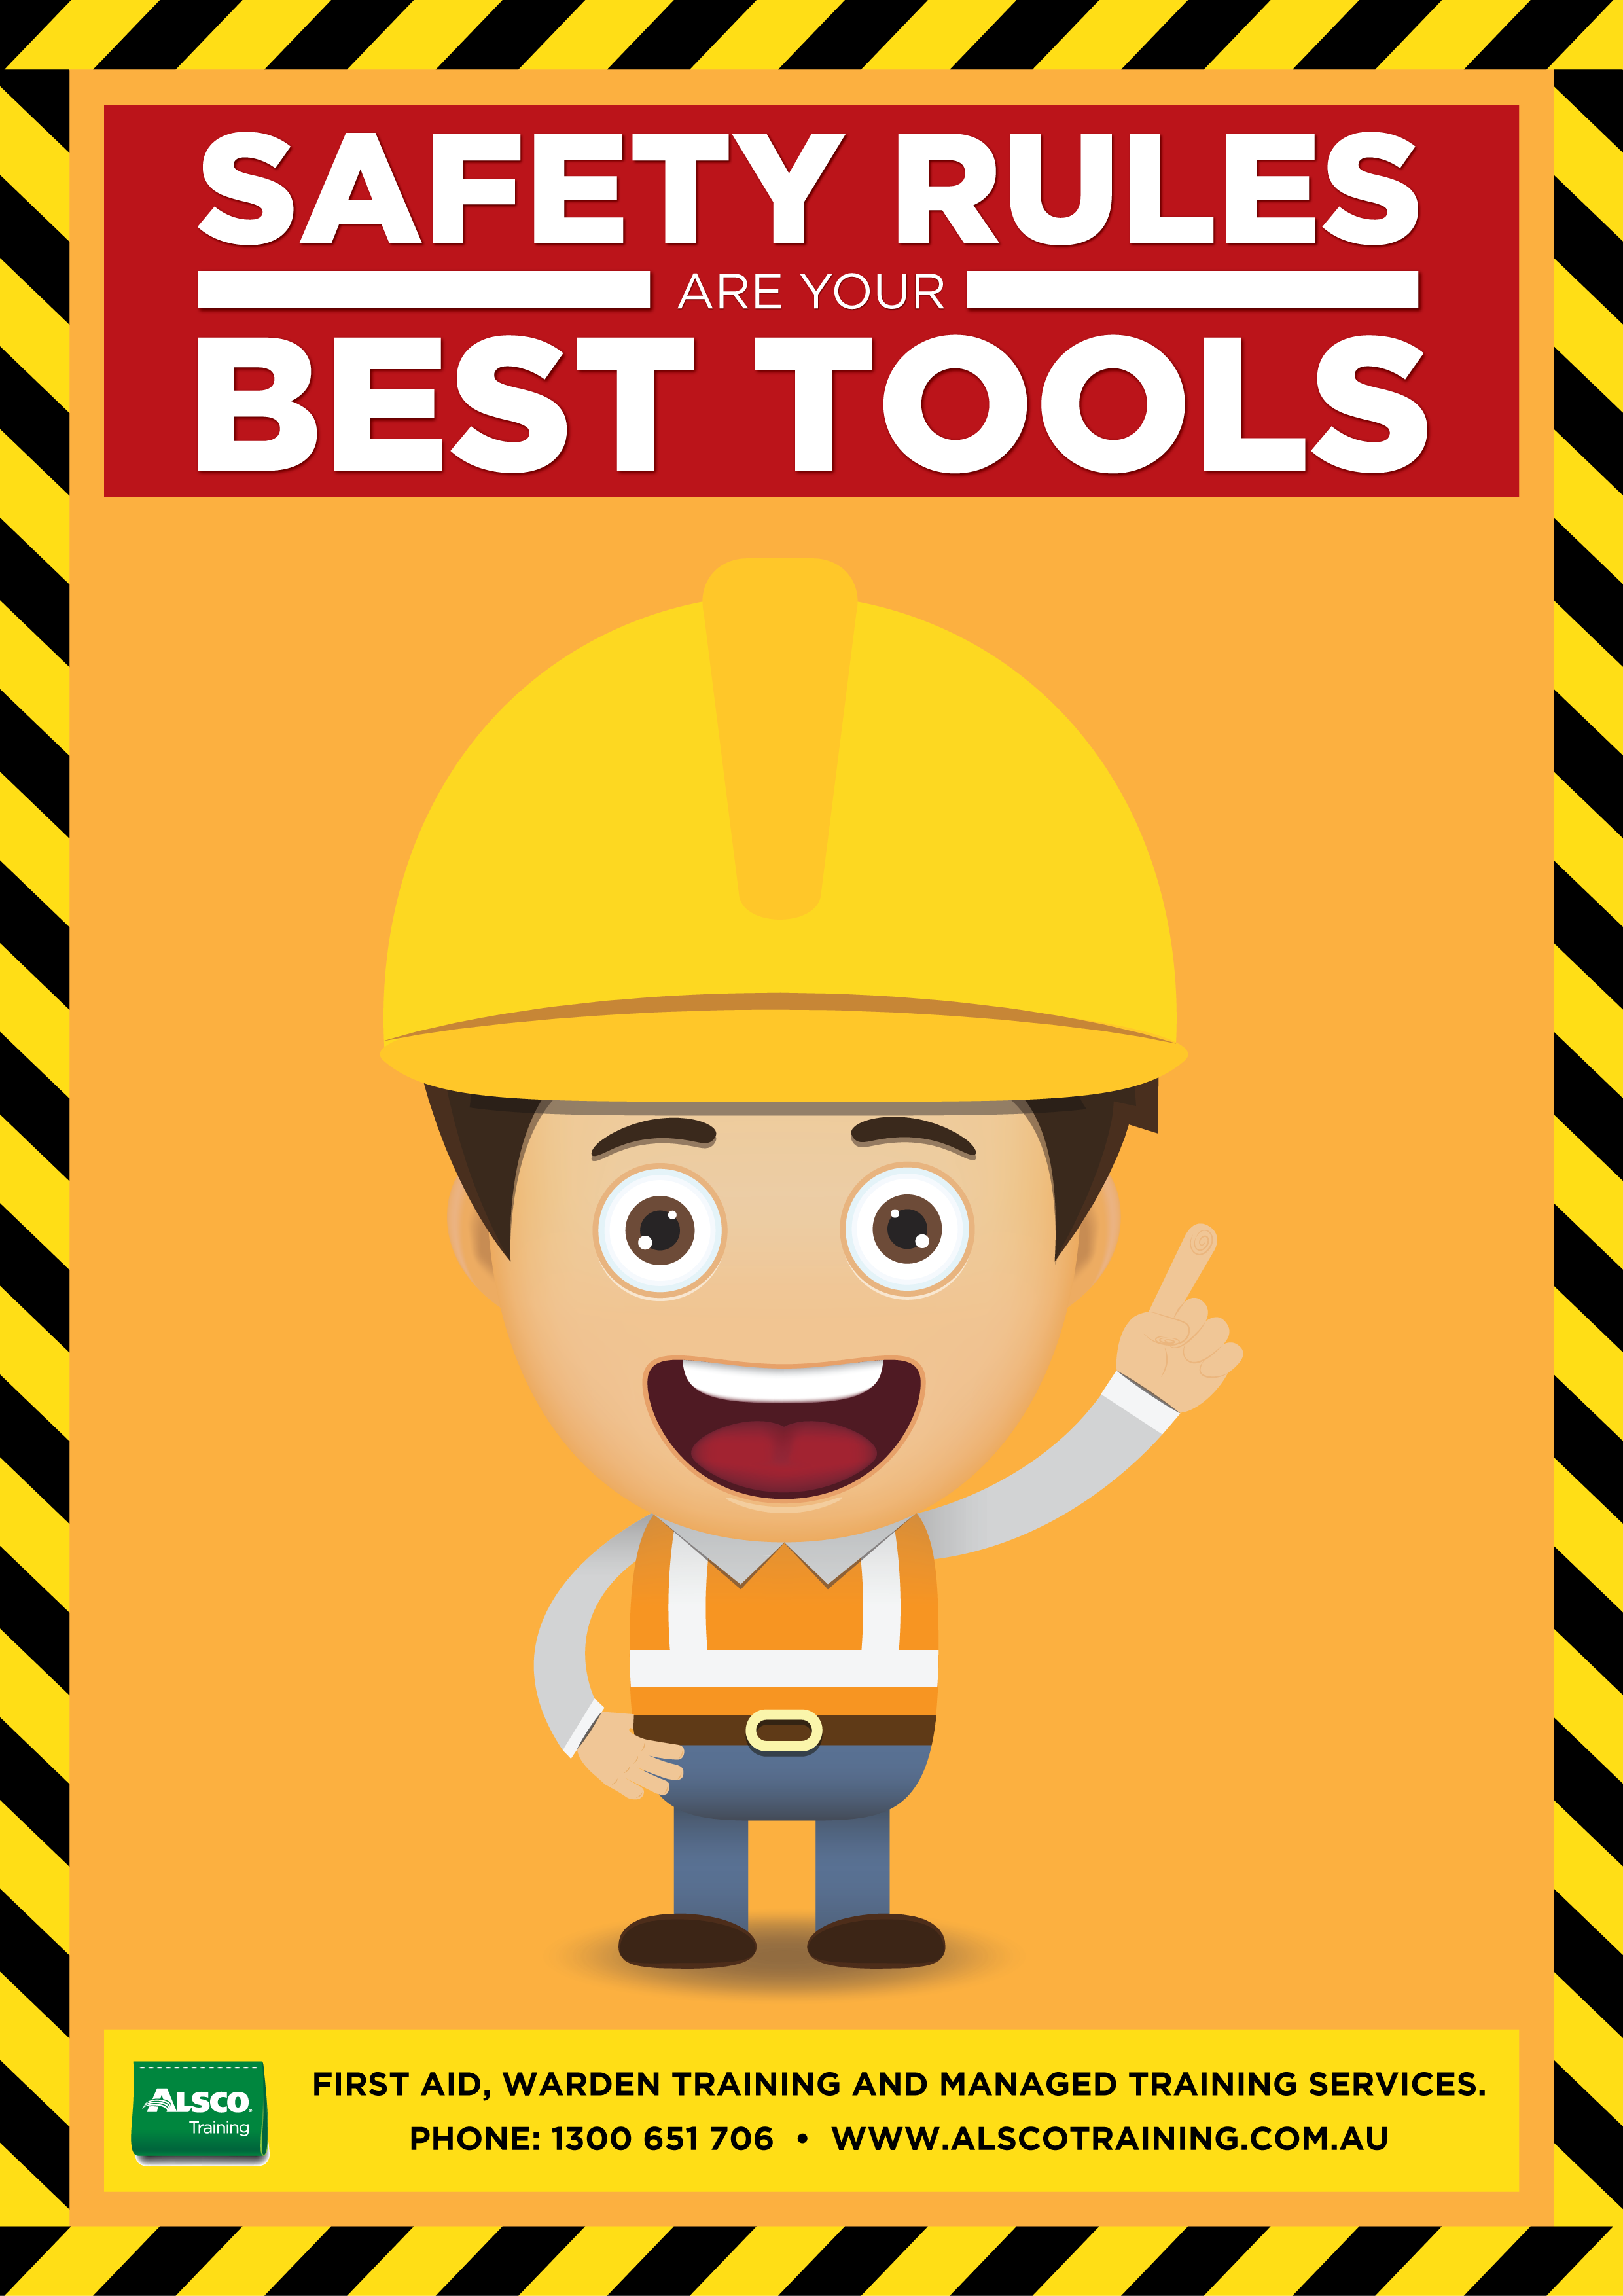 Alsco-Training-Safety-Posters-Safety-Rules-Best-Tools-A4 ...